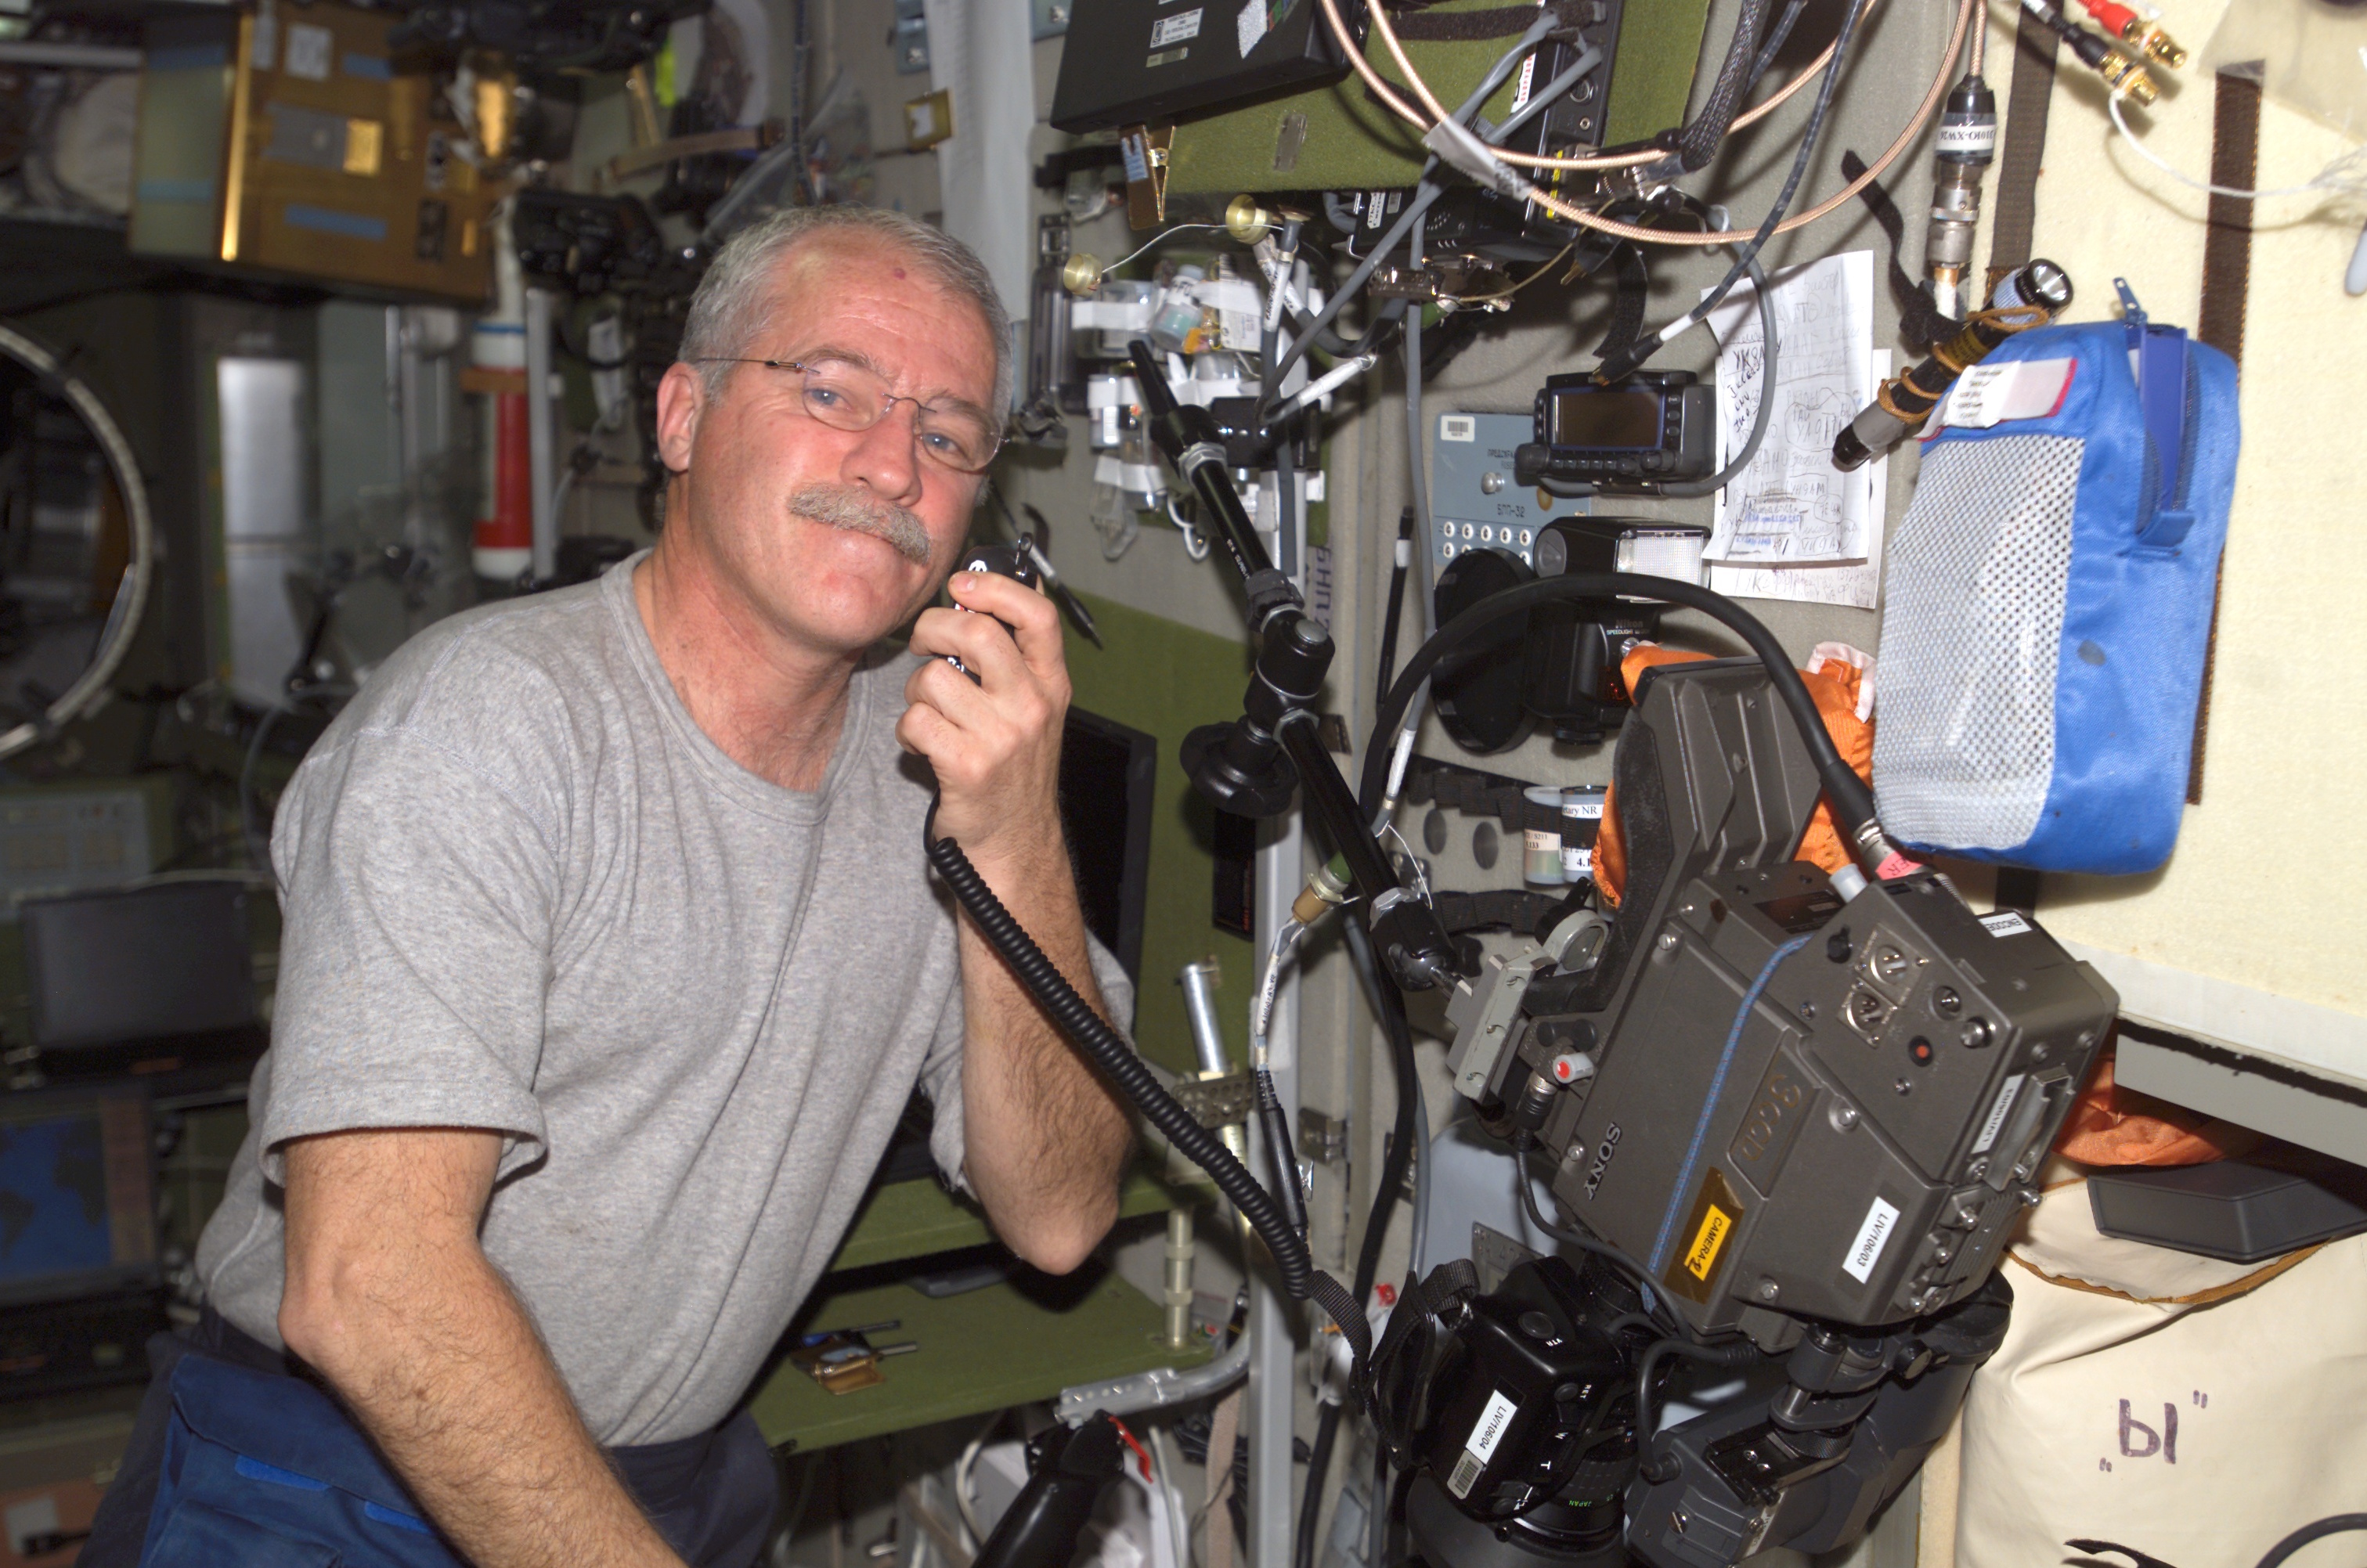 John Phillips, a NASA astronaut who lived on the International Space Station in 2005 experienced sight issues. Credit: NASA